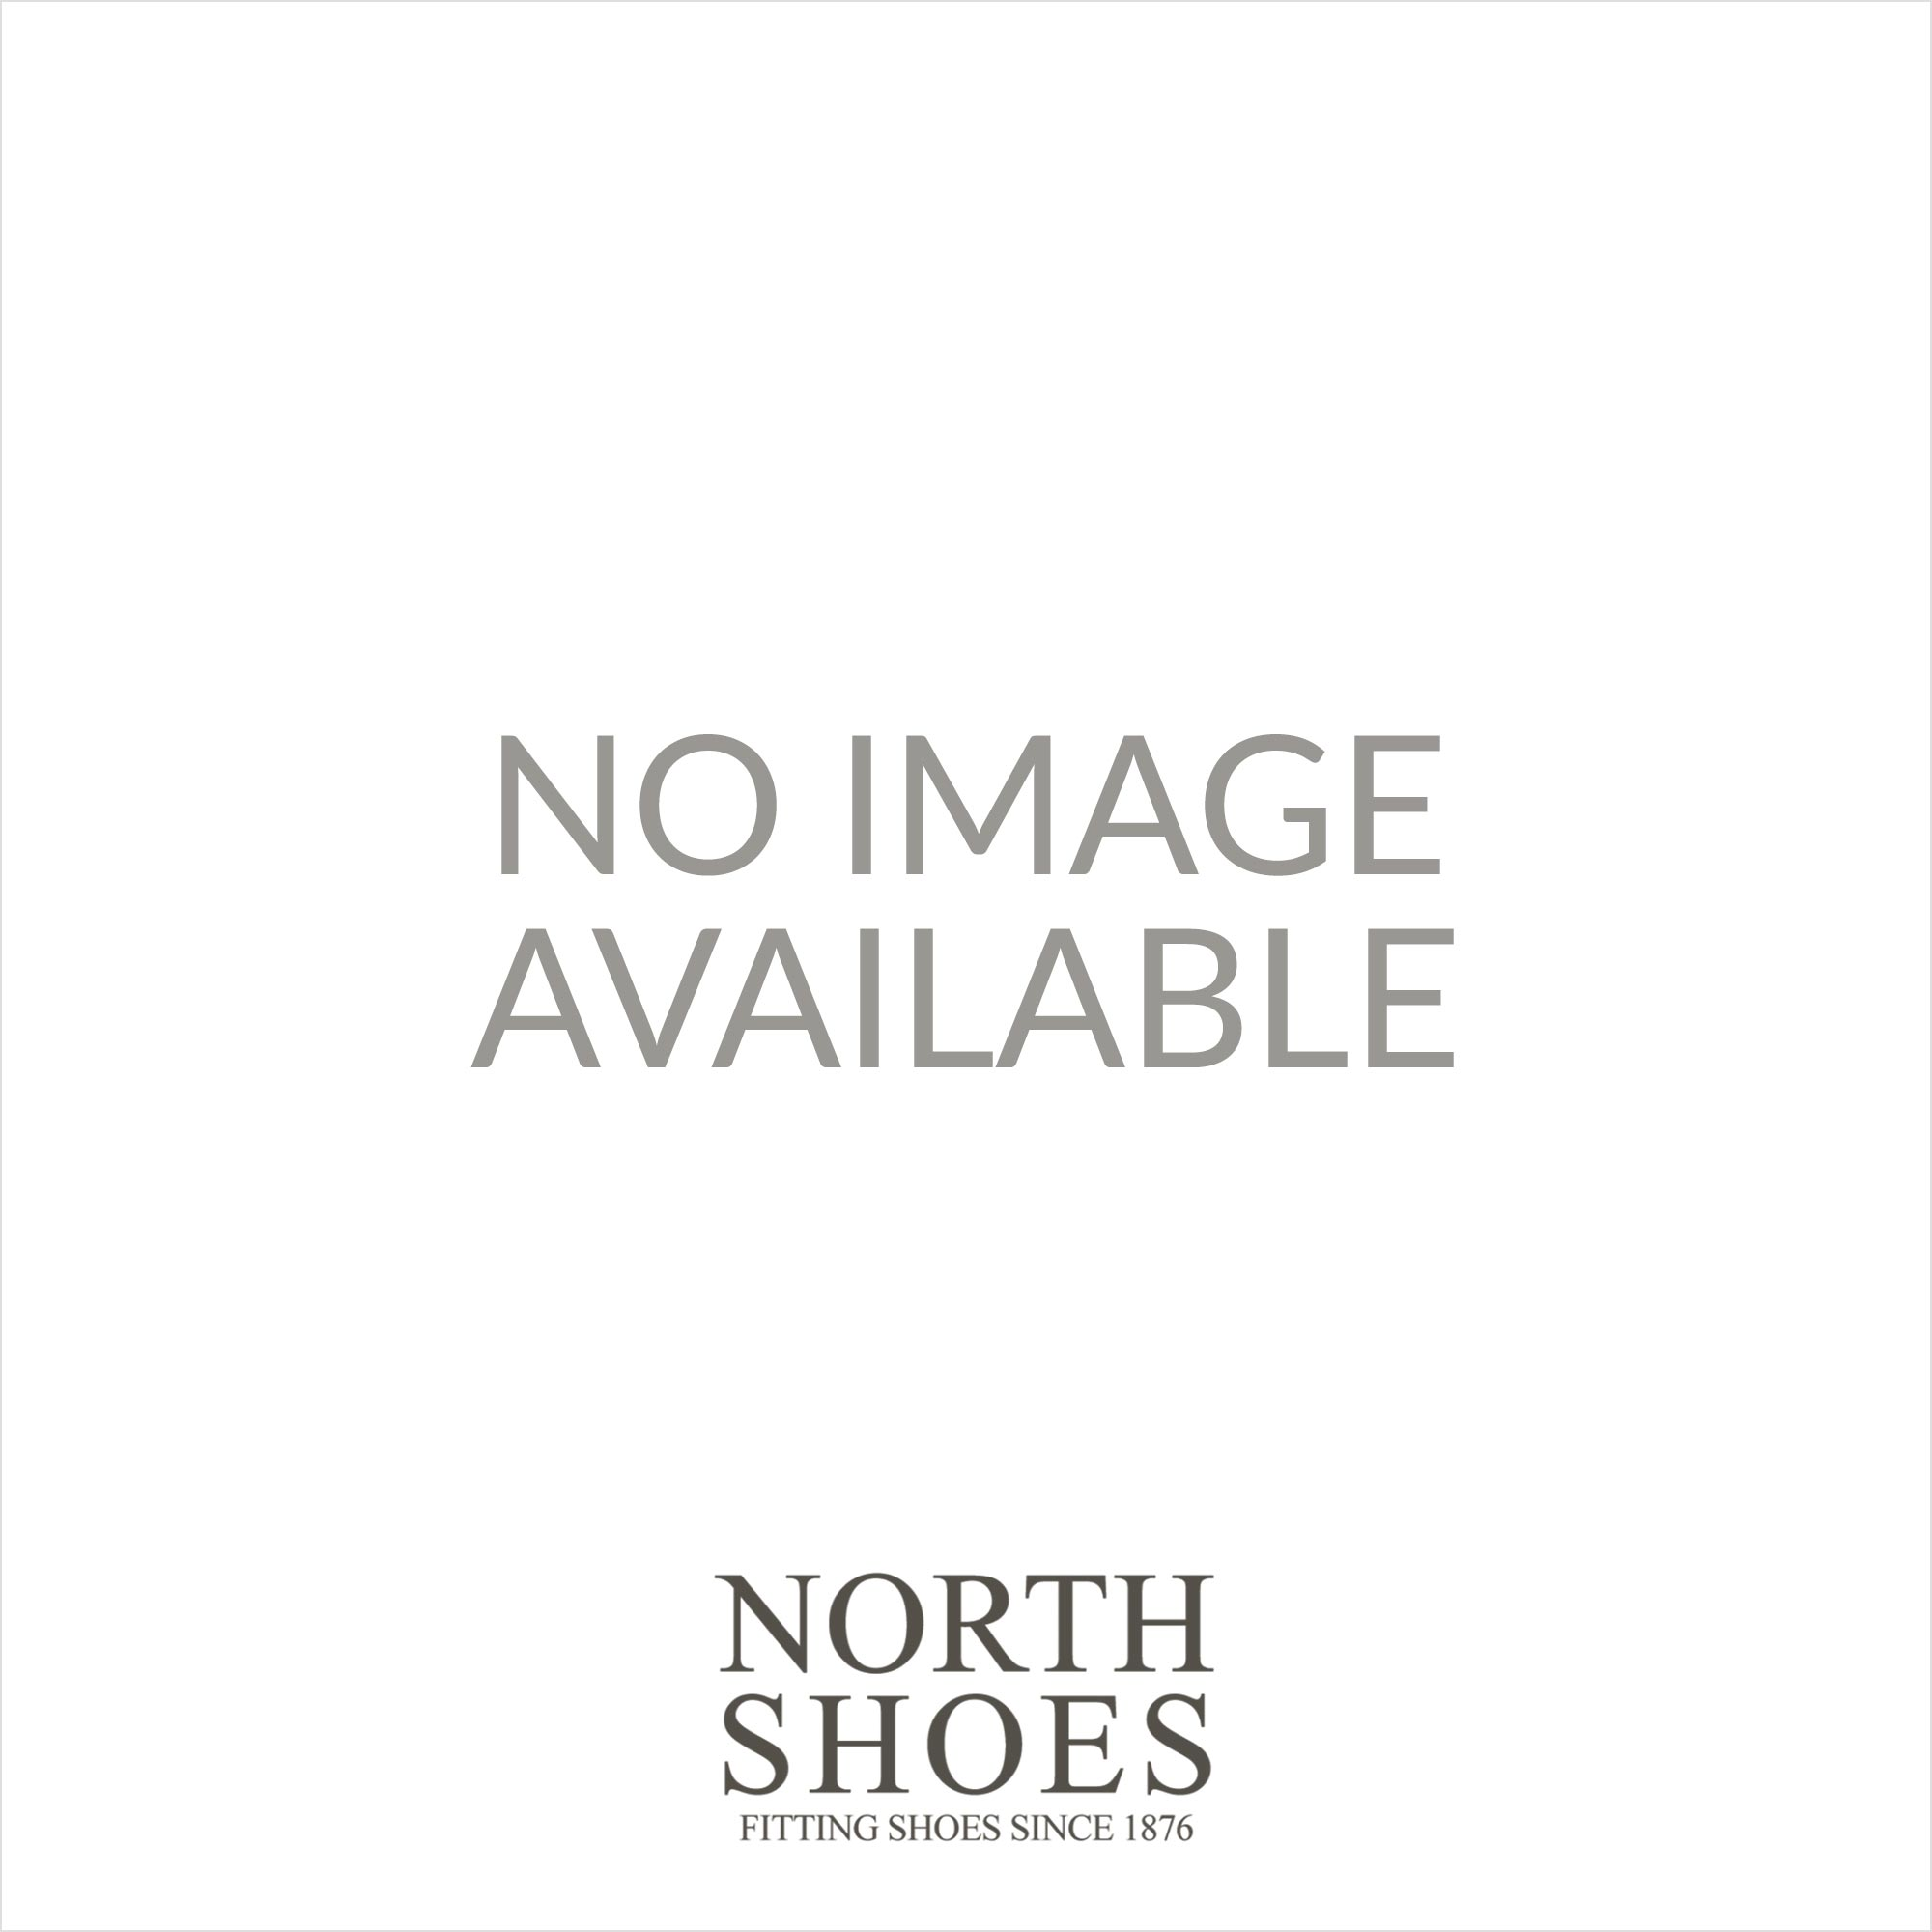 4d81294b16a HB Italia B741 Sand Suede Leather Womens Block Heel Strapy Sandal - HB  Italia from North Shoes UK